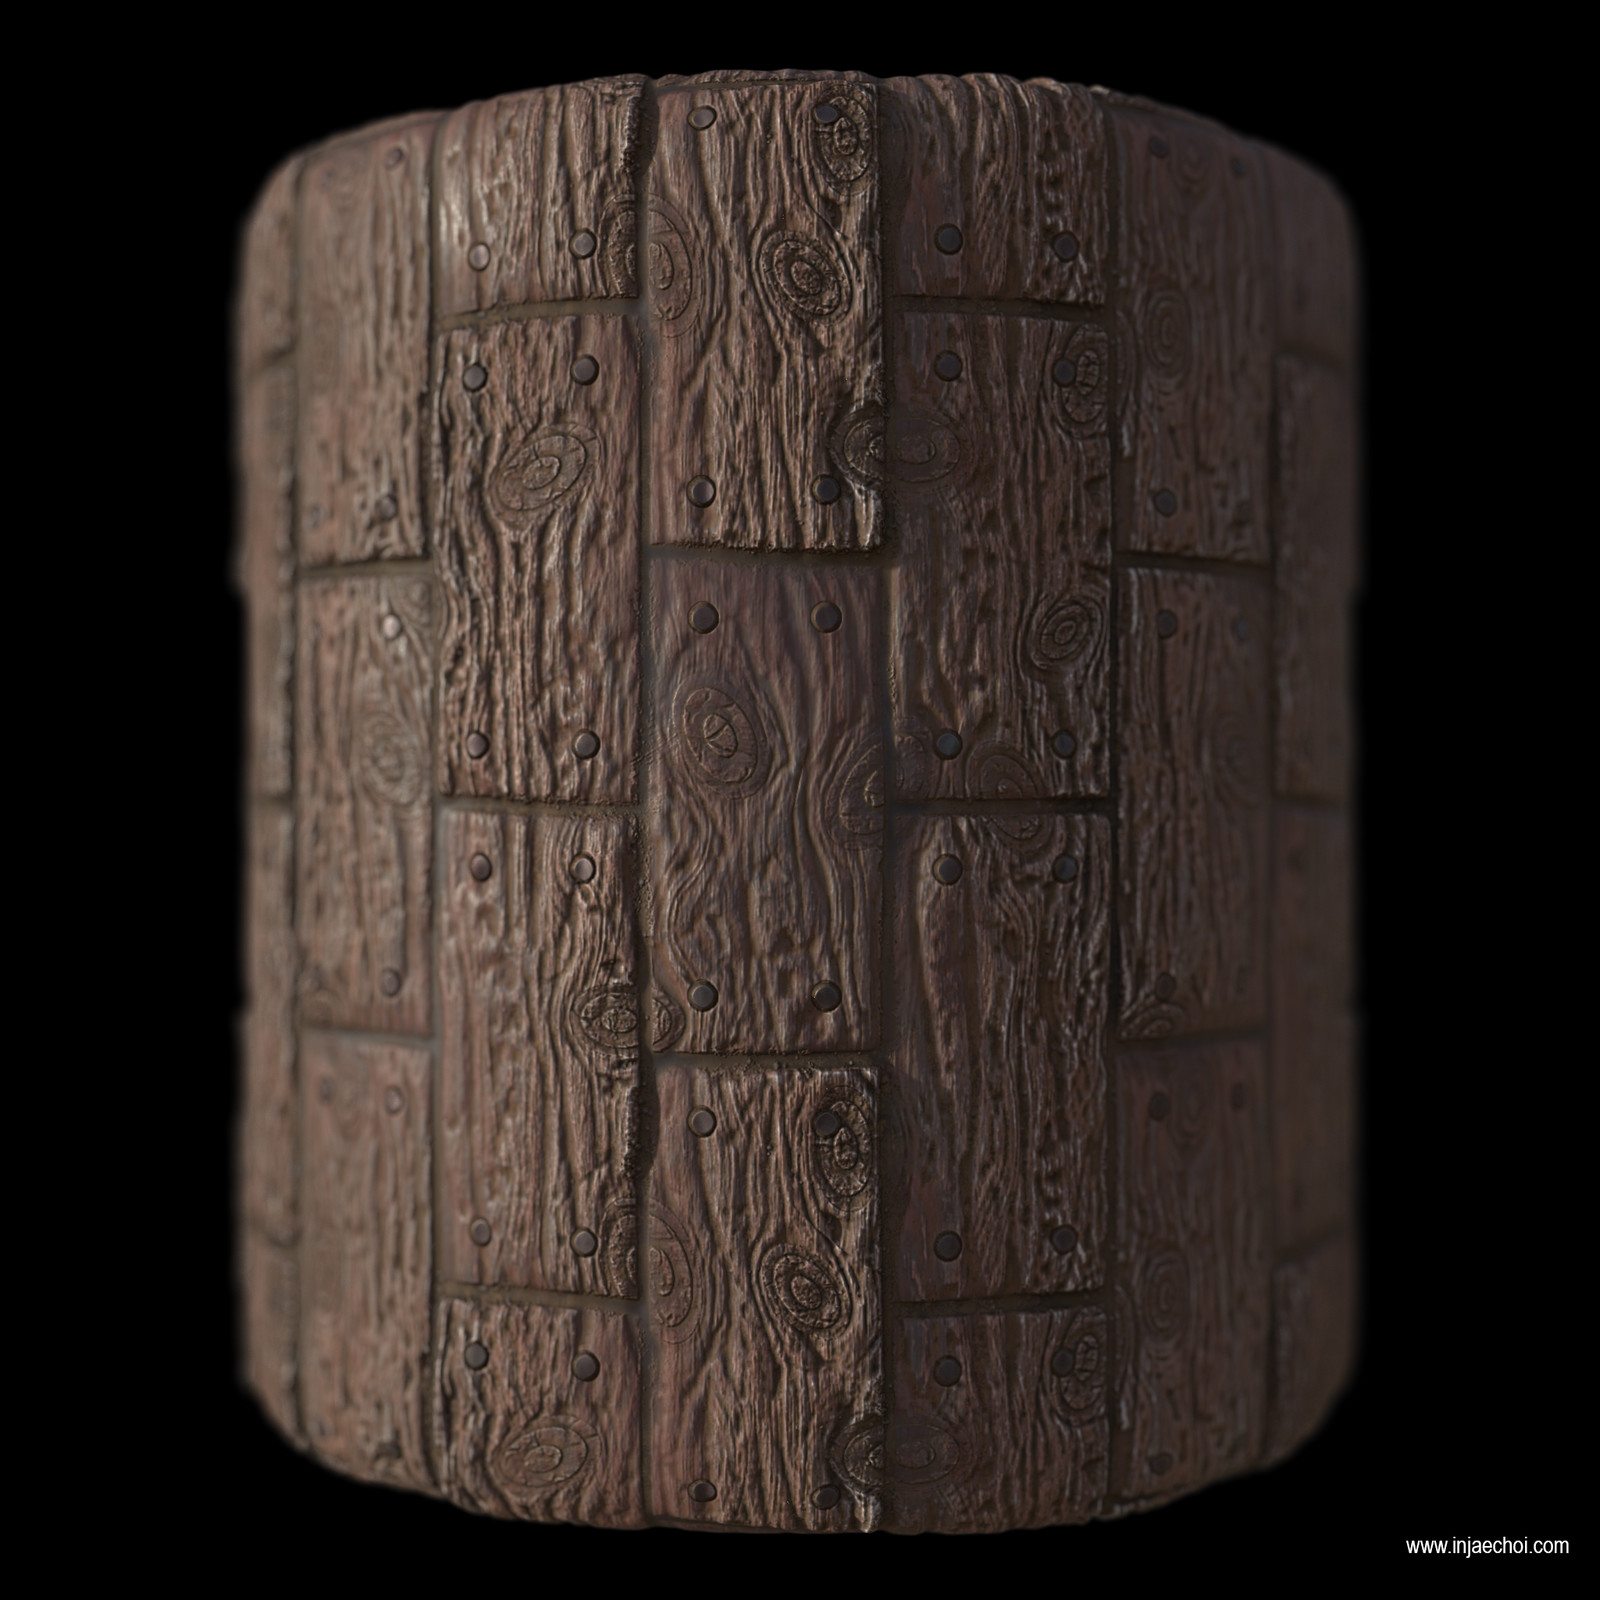 Aged wood Planks Substance Designer Study (100% Procedeual)